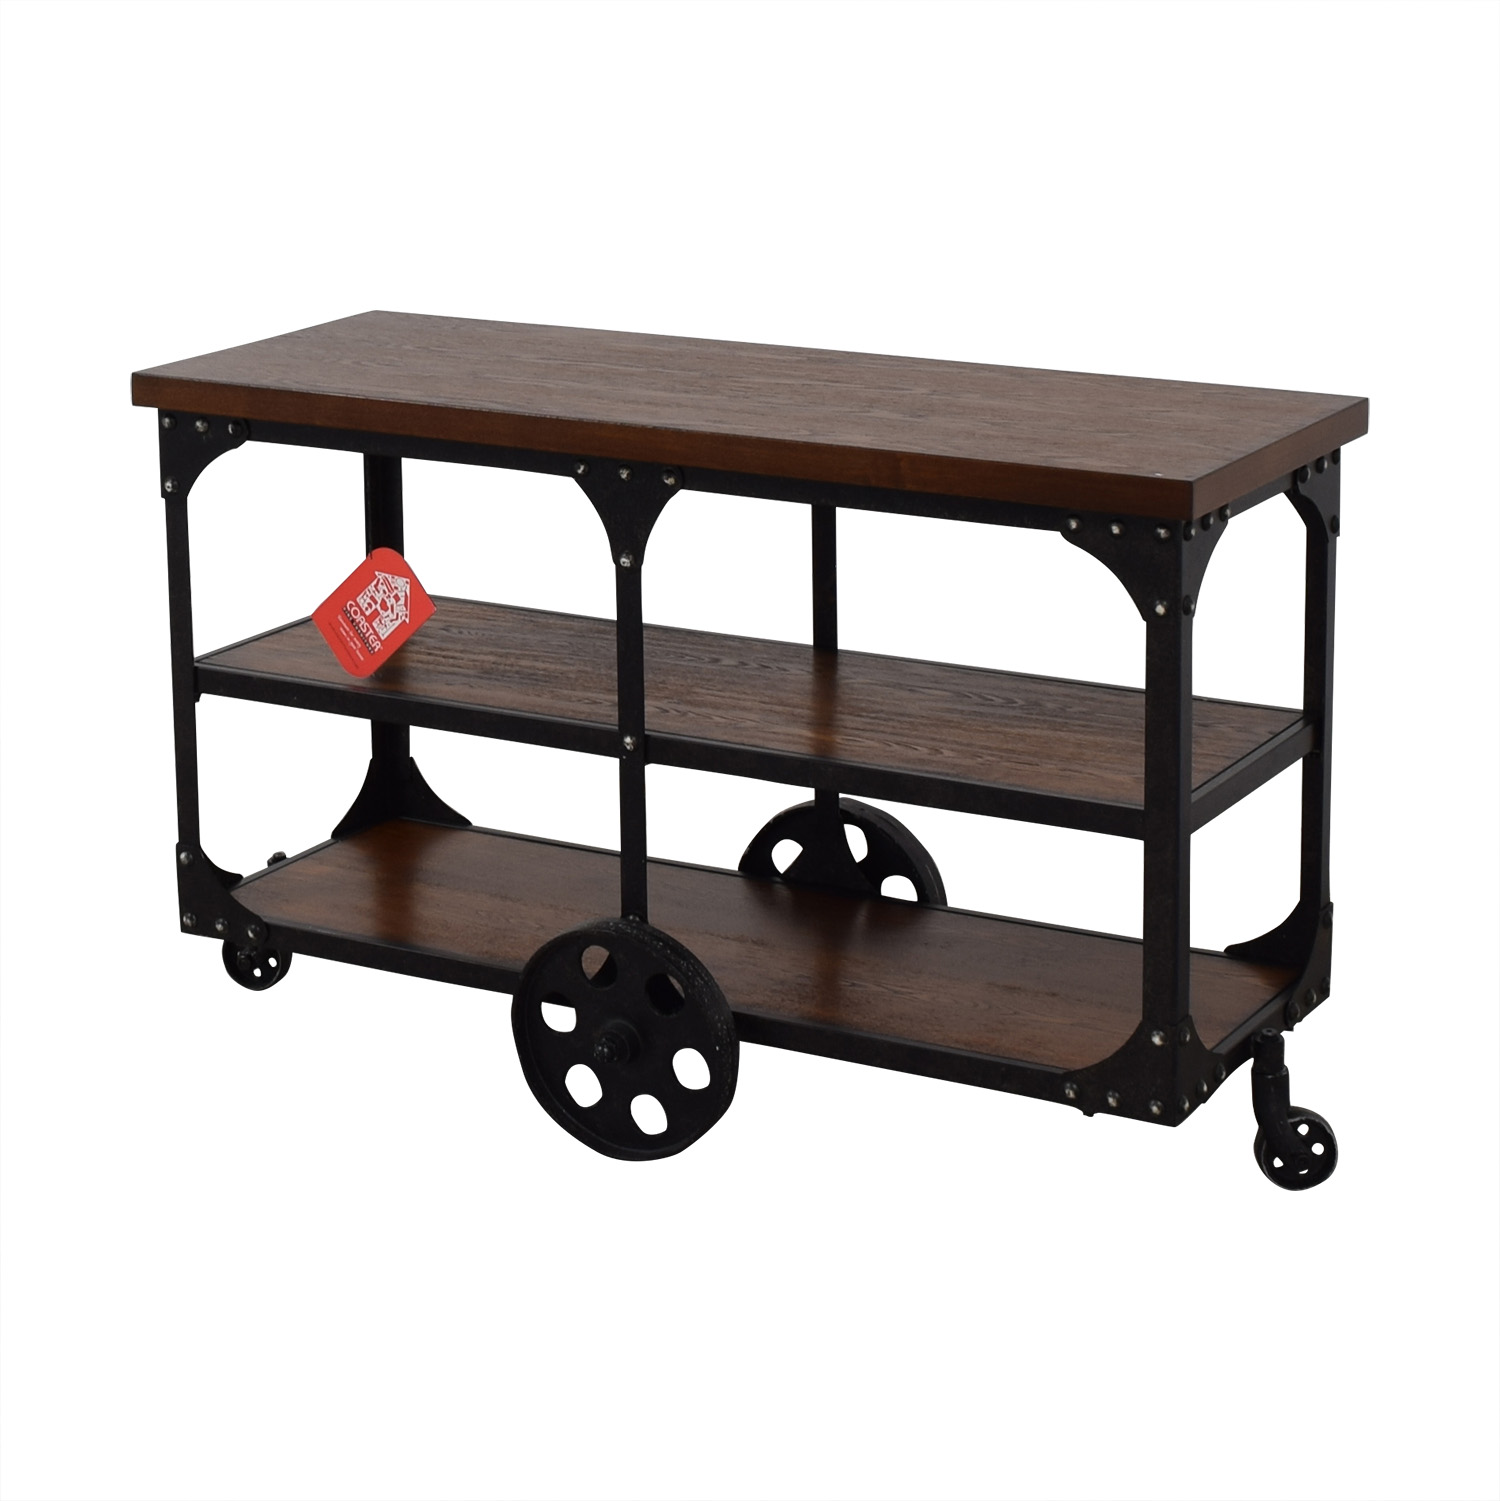 Coaster Fine Furniture Coaster Fine Furniture Rustic Industrial Roller Cart Sofa Table dimensions